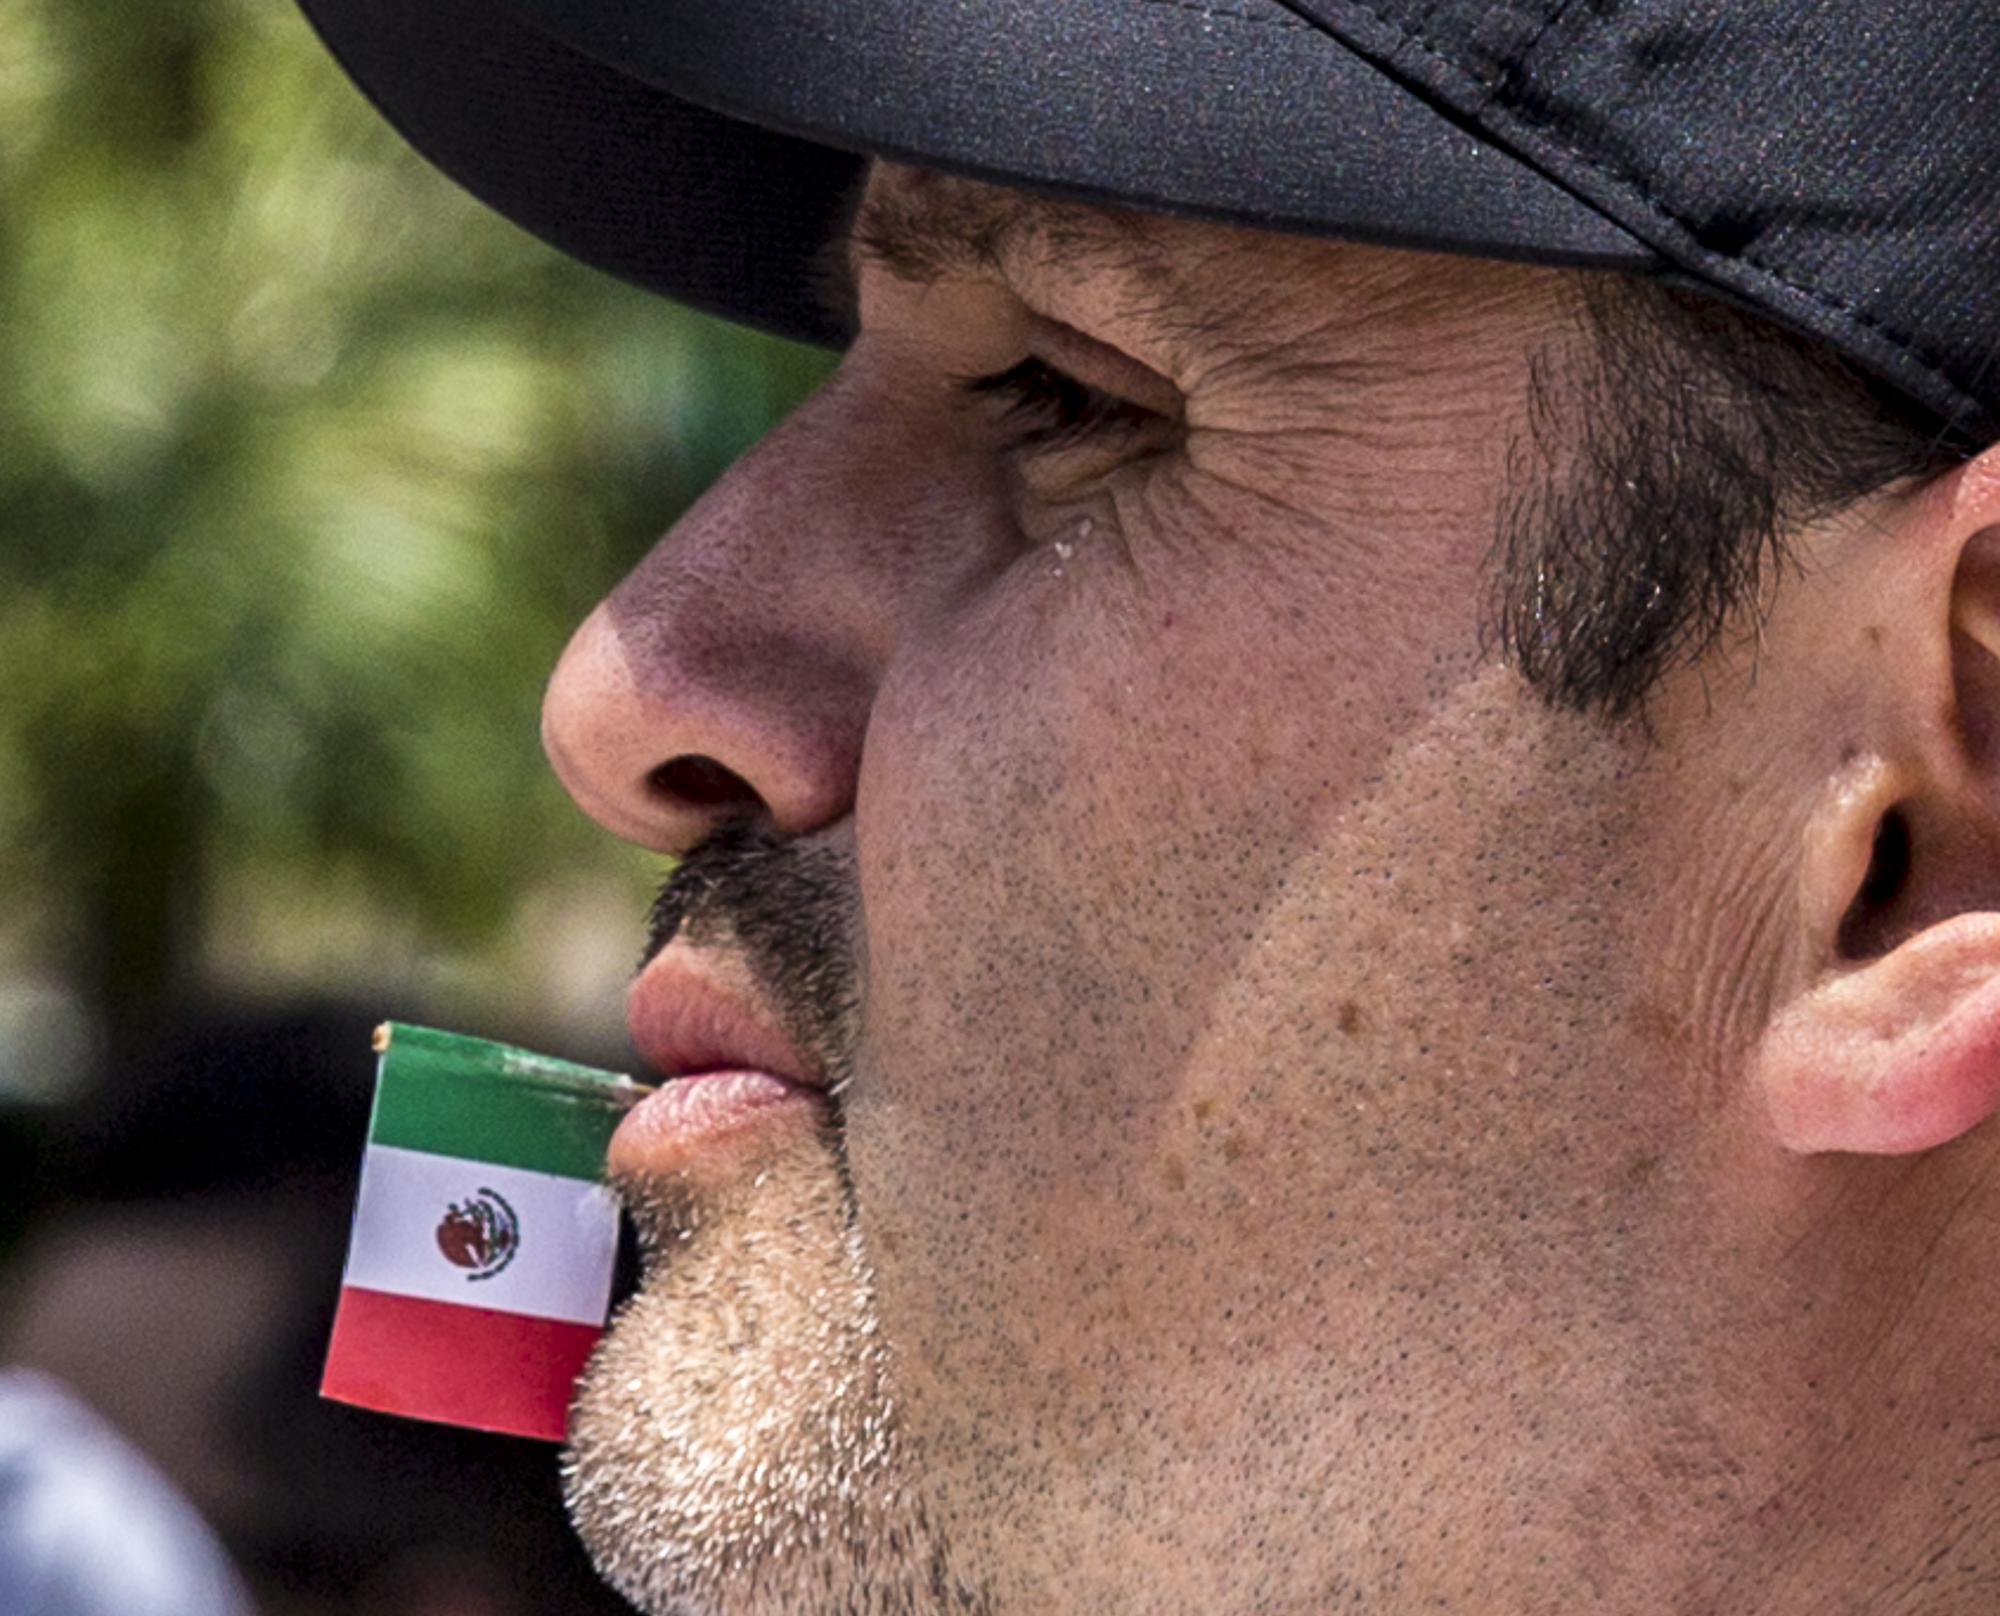 Manuel Garcia chews on a toothpick with the Mexican flag attached to the end of it during the annual Olvera Street Cinco De Mayo celebration in Downtown Los Angeles, California on May 5, 2018. (Matthew Martin/Corsair Photo)